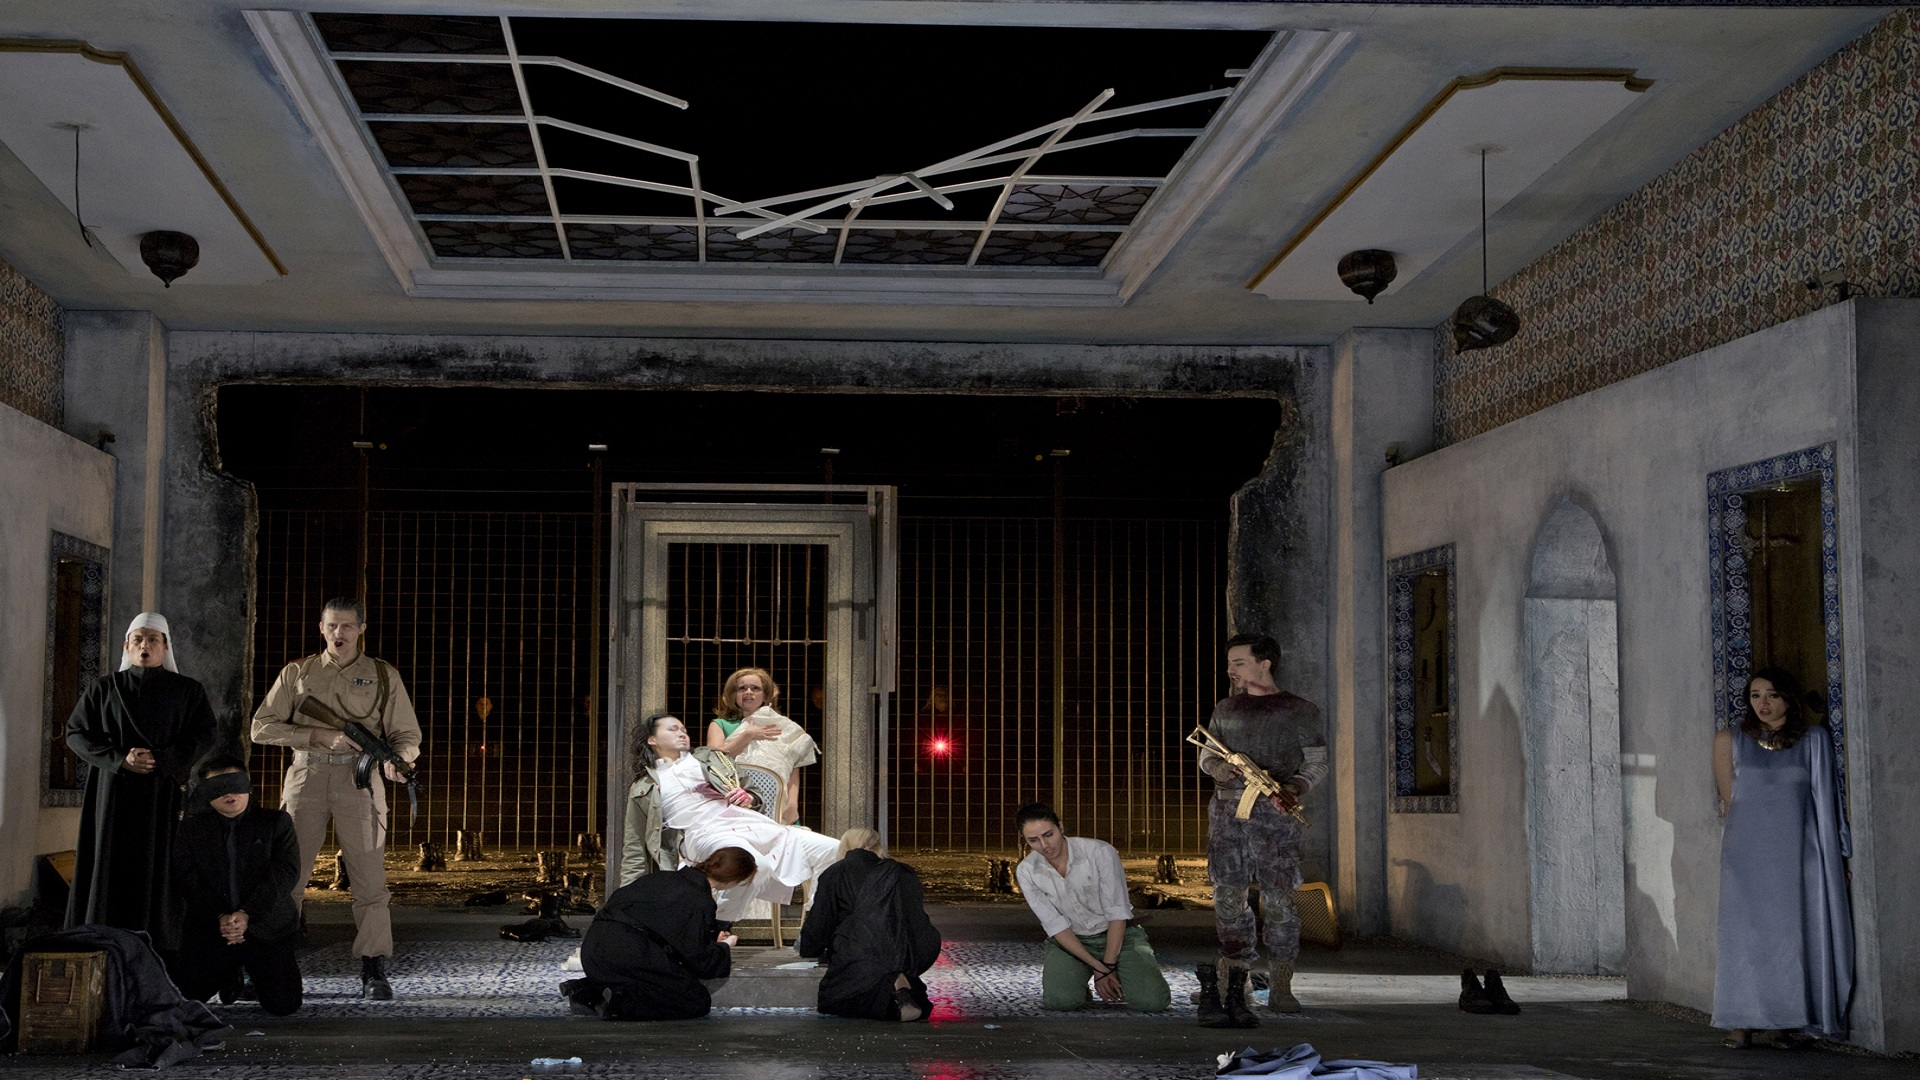 Mitridate-Opera-by-Porpora-Stage-Director-Jacopo-Spirei-13